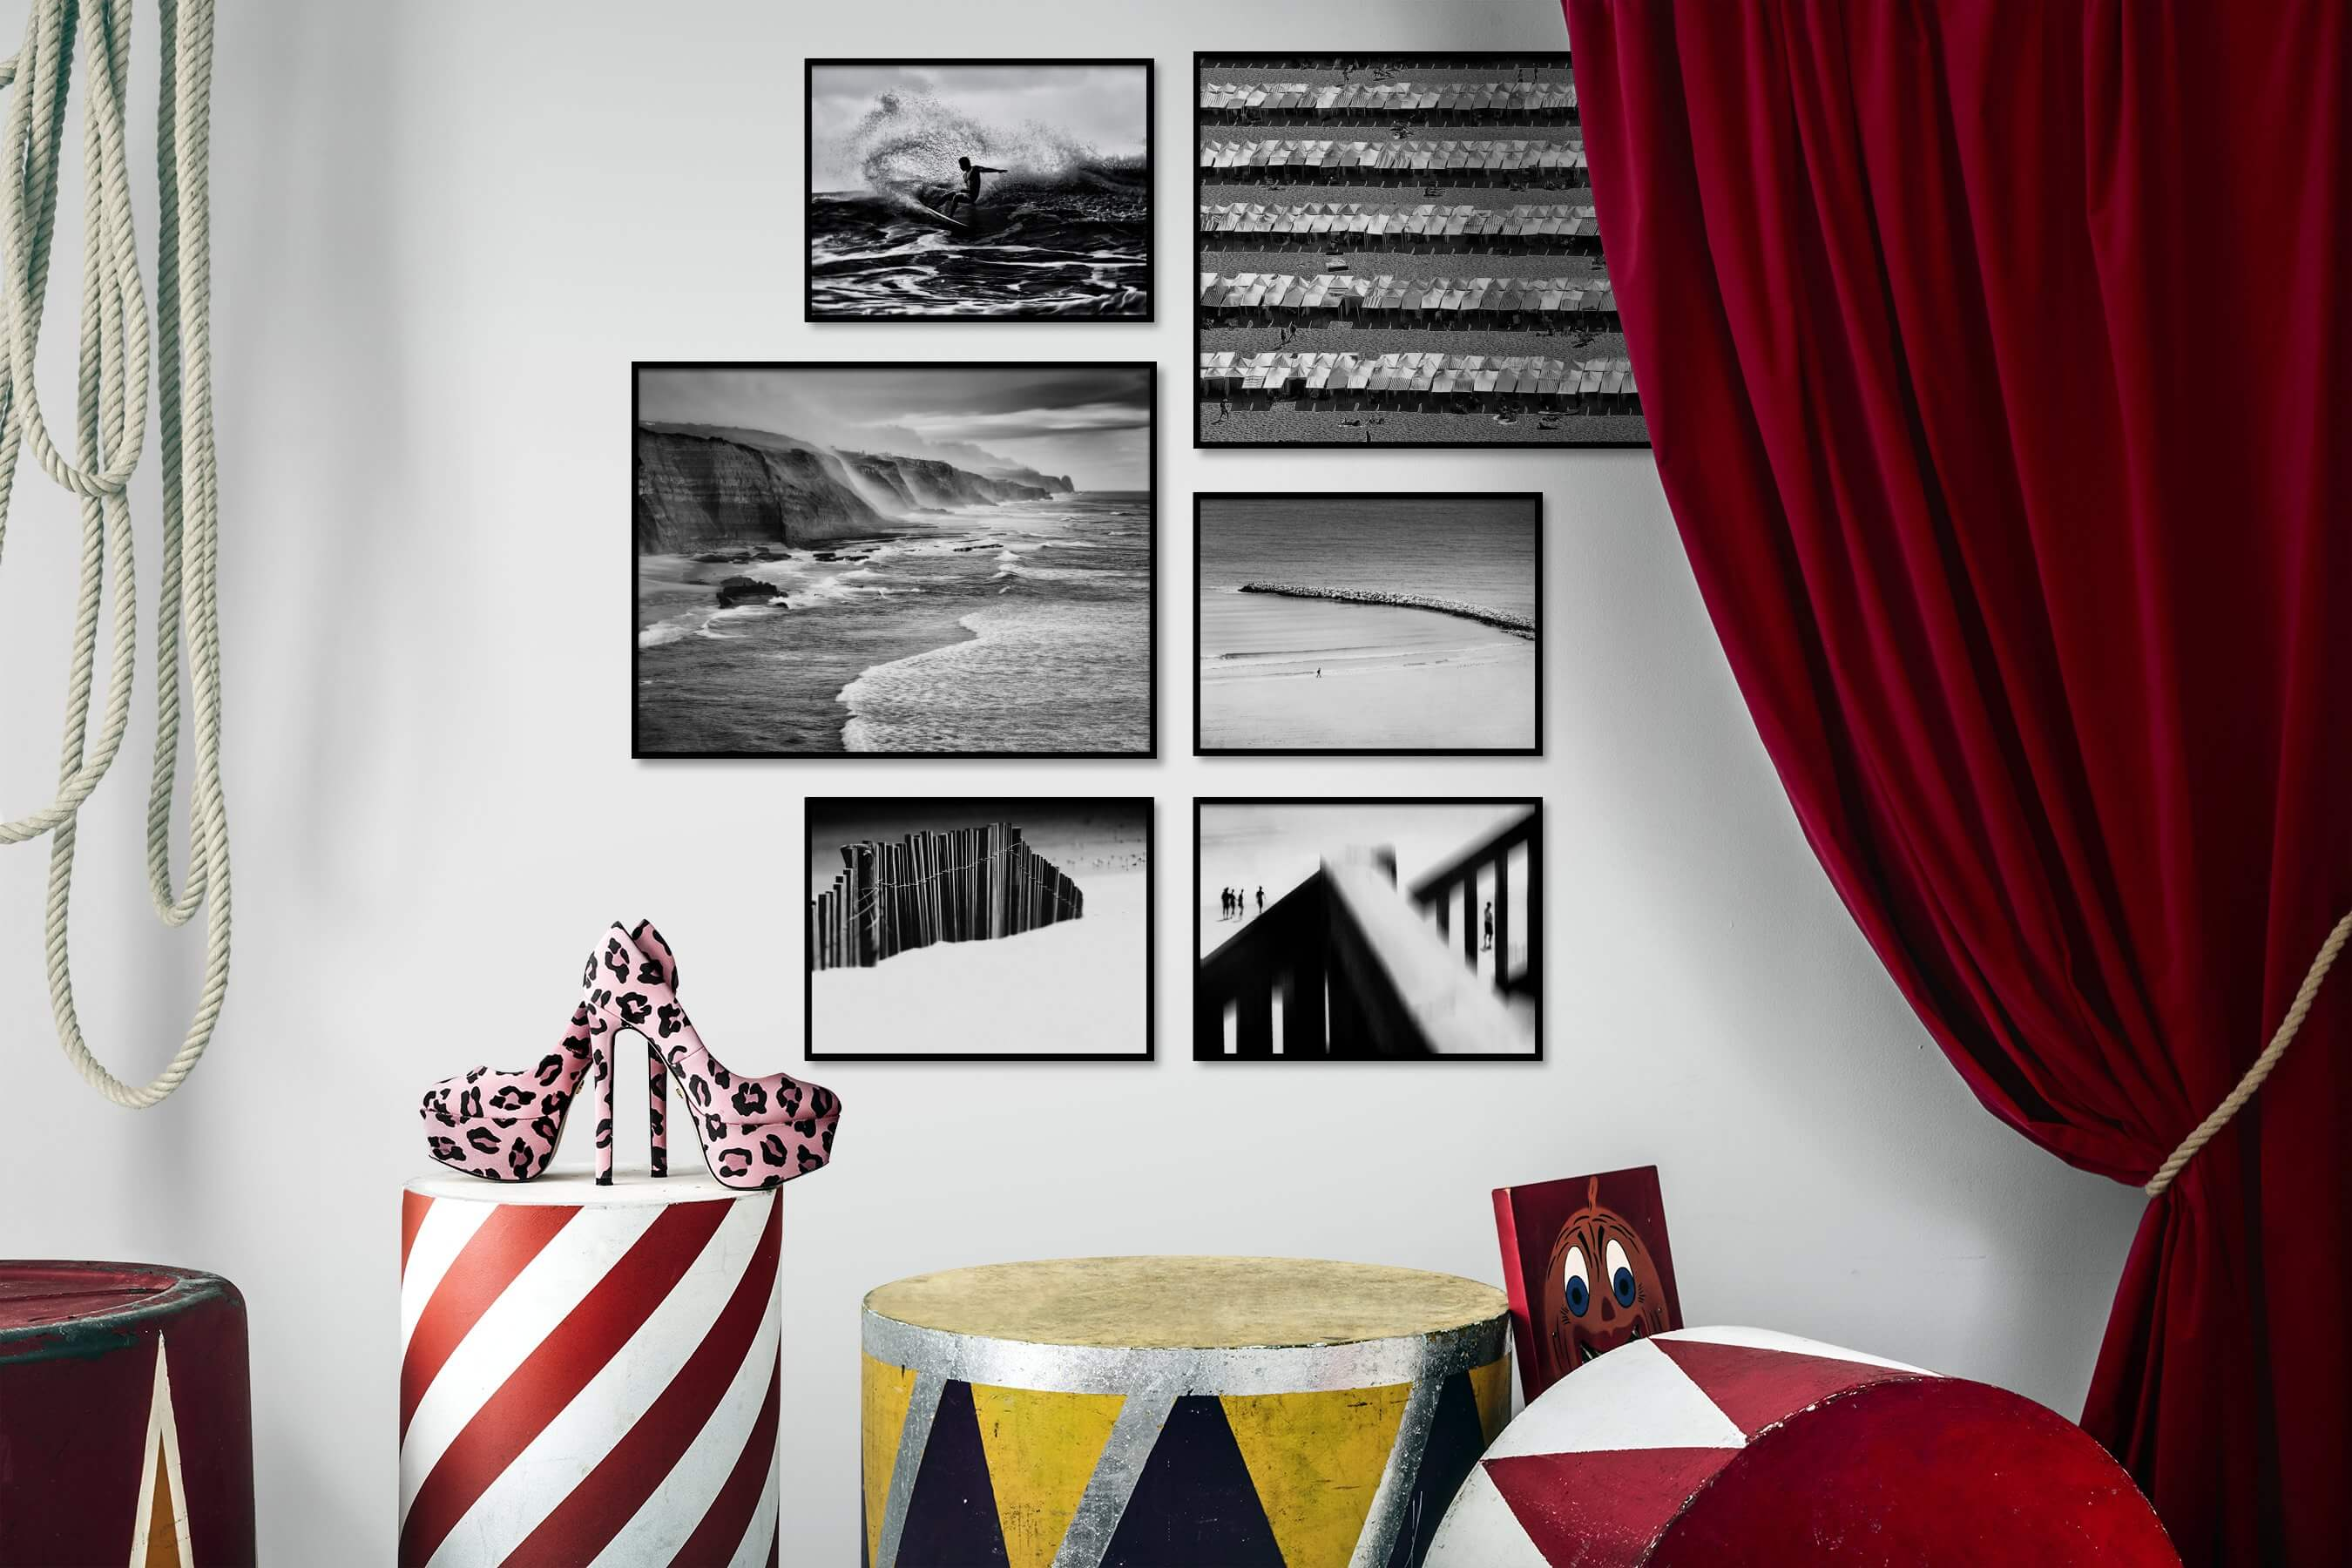 Gallery wall idea with six framed pictures arranged on a wall depicting Black & White, Beach & Water, For the Moderate, and For the Minimalist